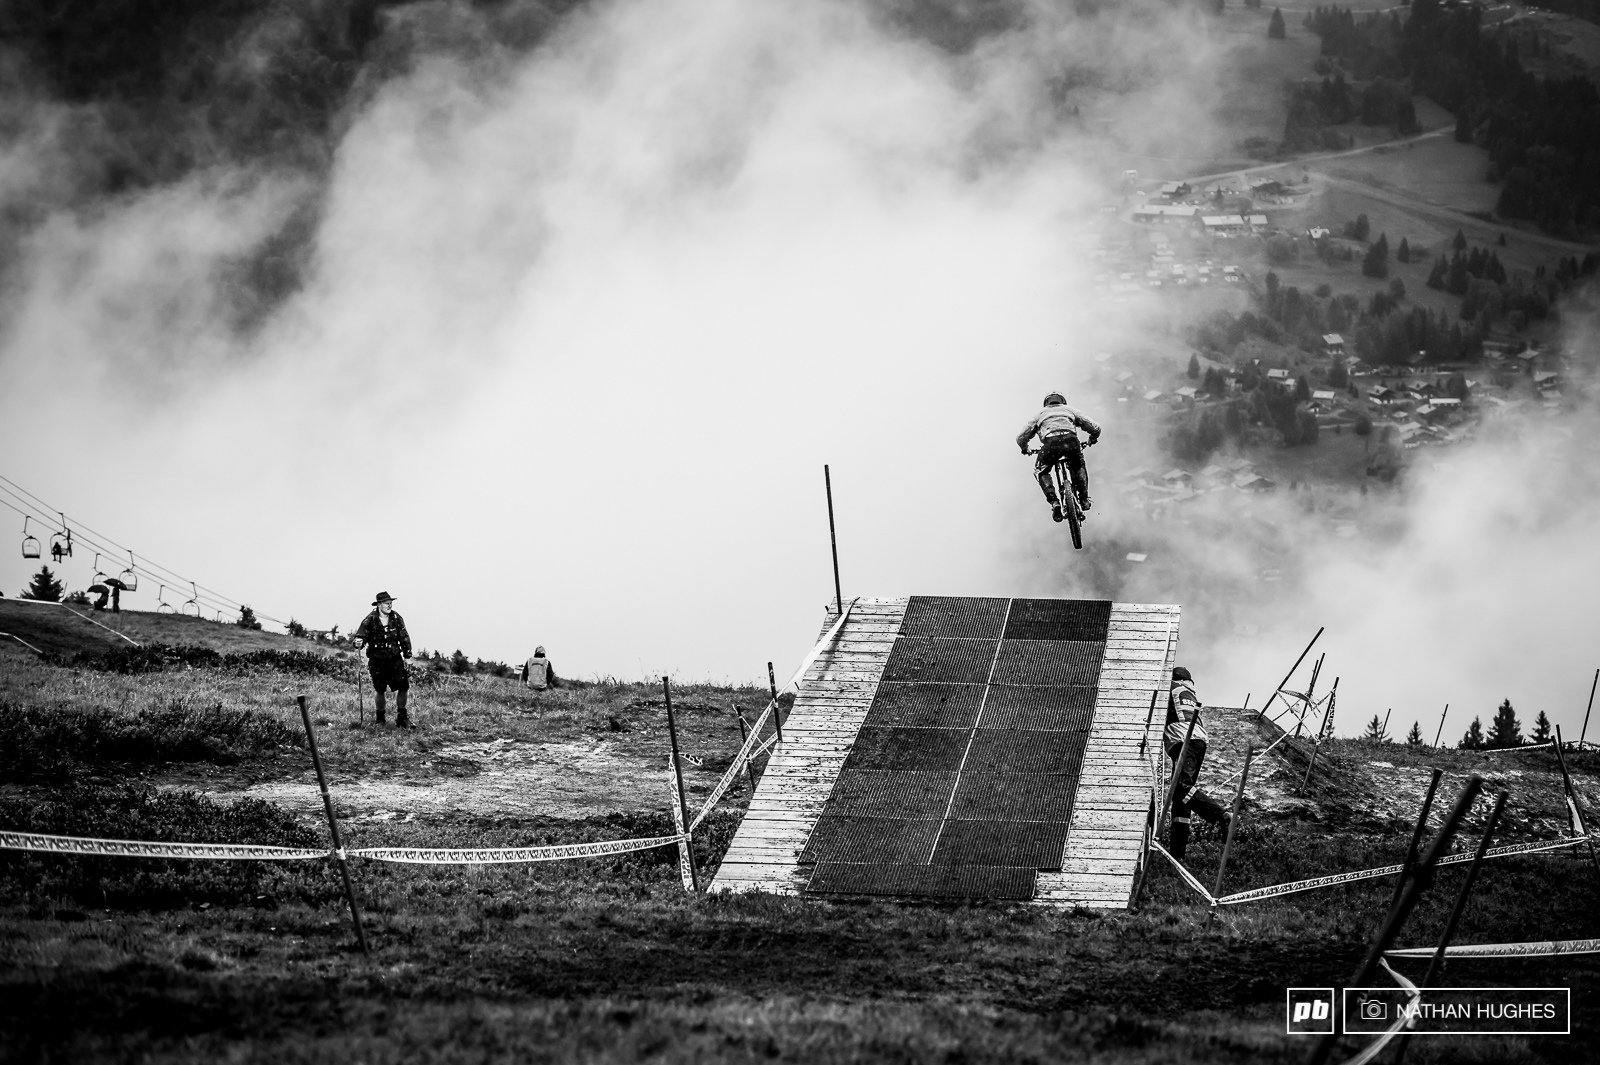 Flying into the fog in the early morning session.